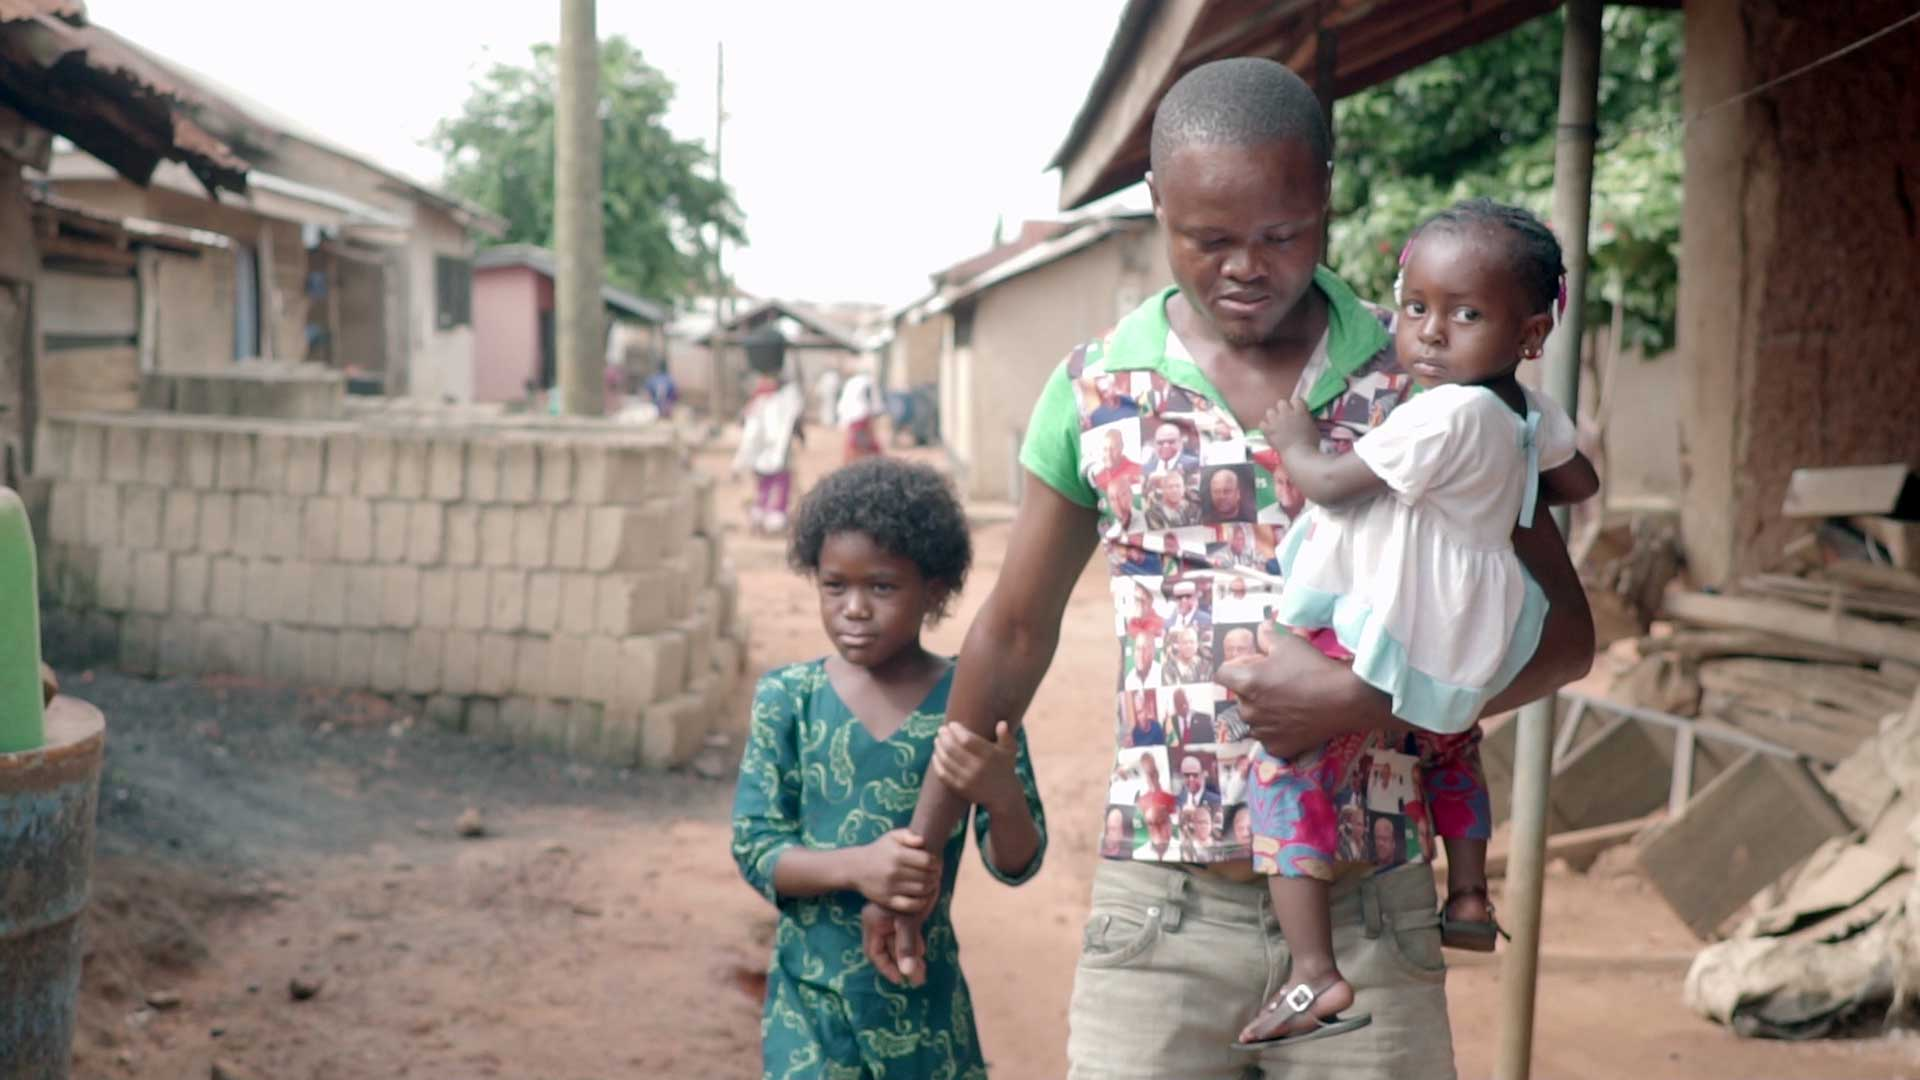 Ghana Documentary Image of Village Family Walking